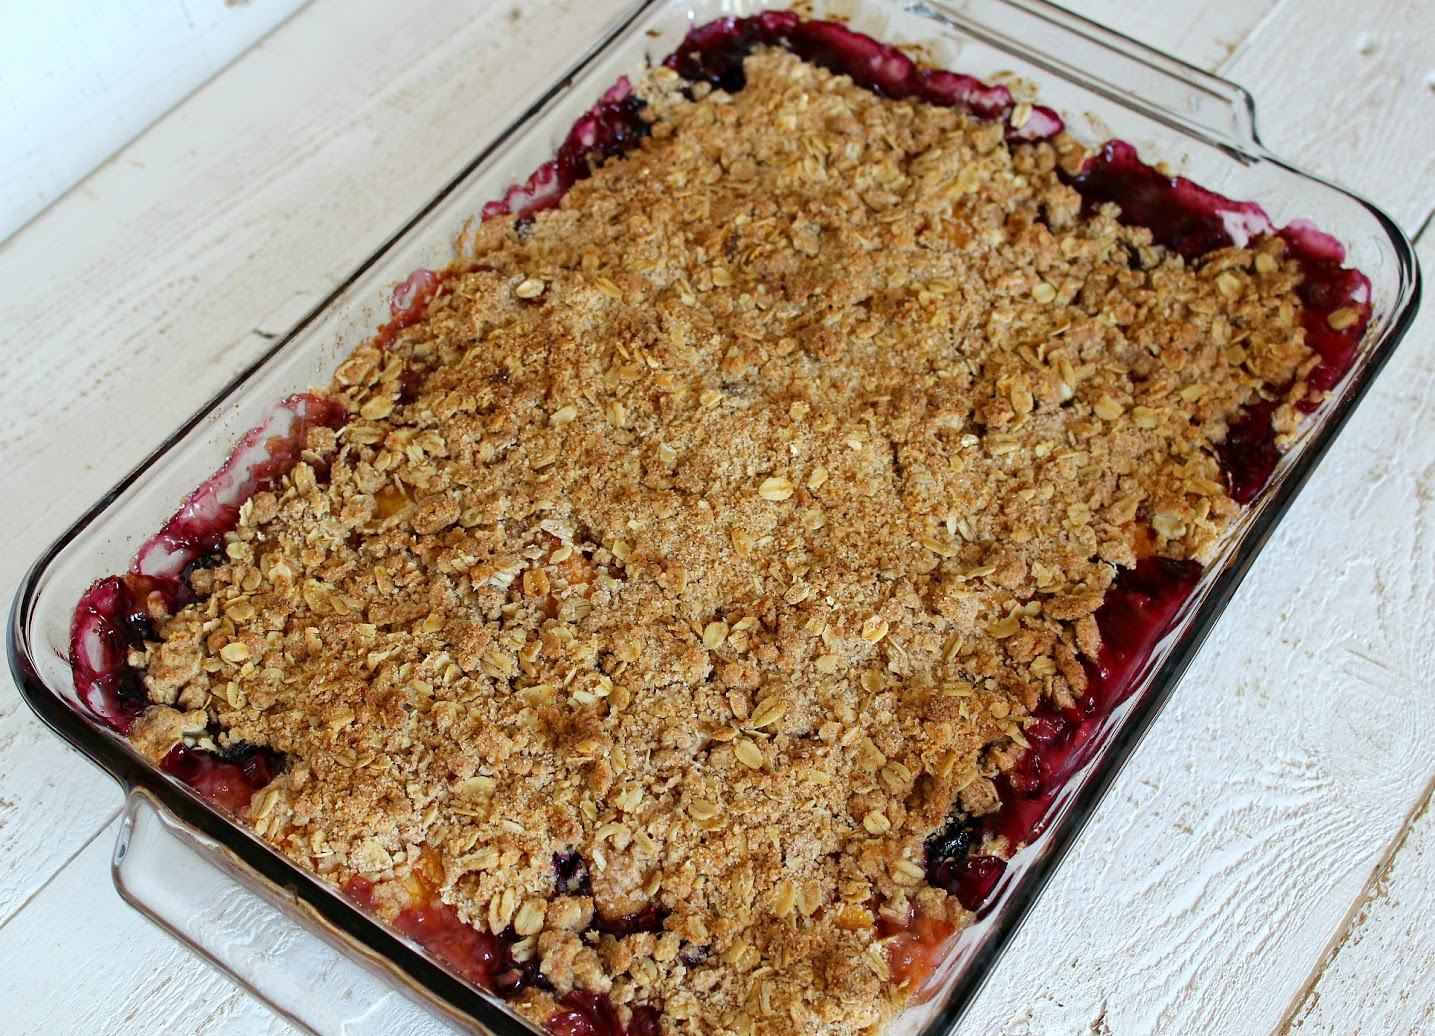 Bake the blueberry peach crumble until the top is browned and the fruit is bubbling.